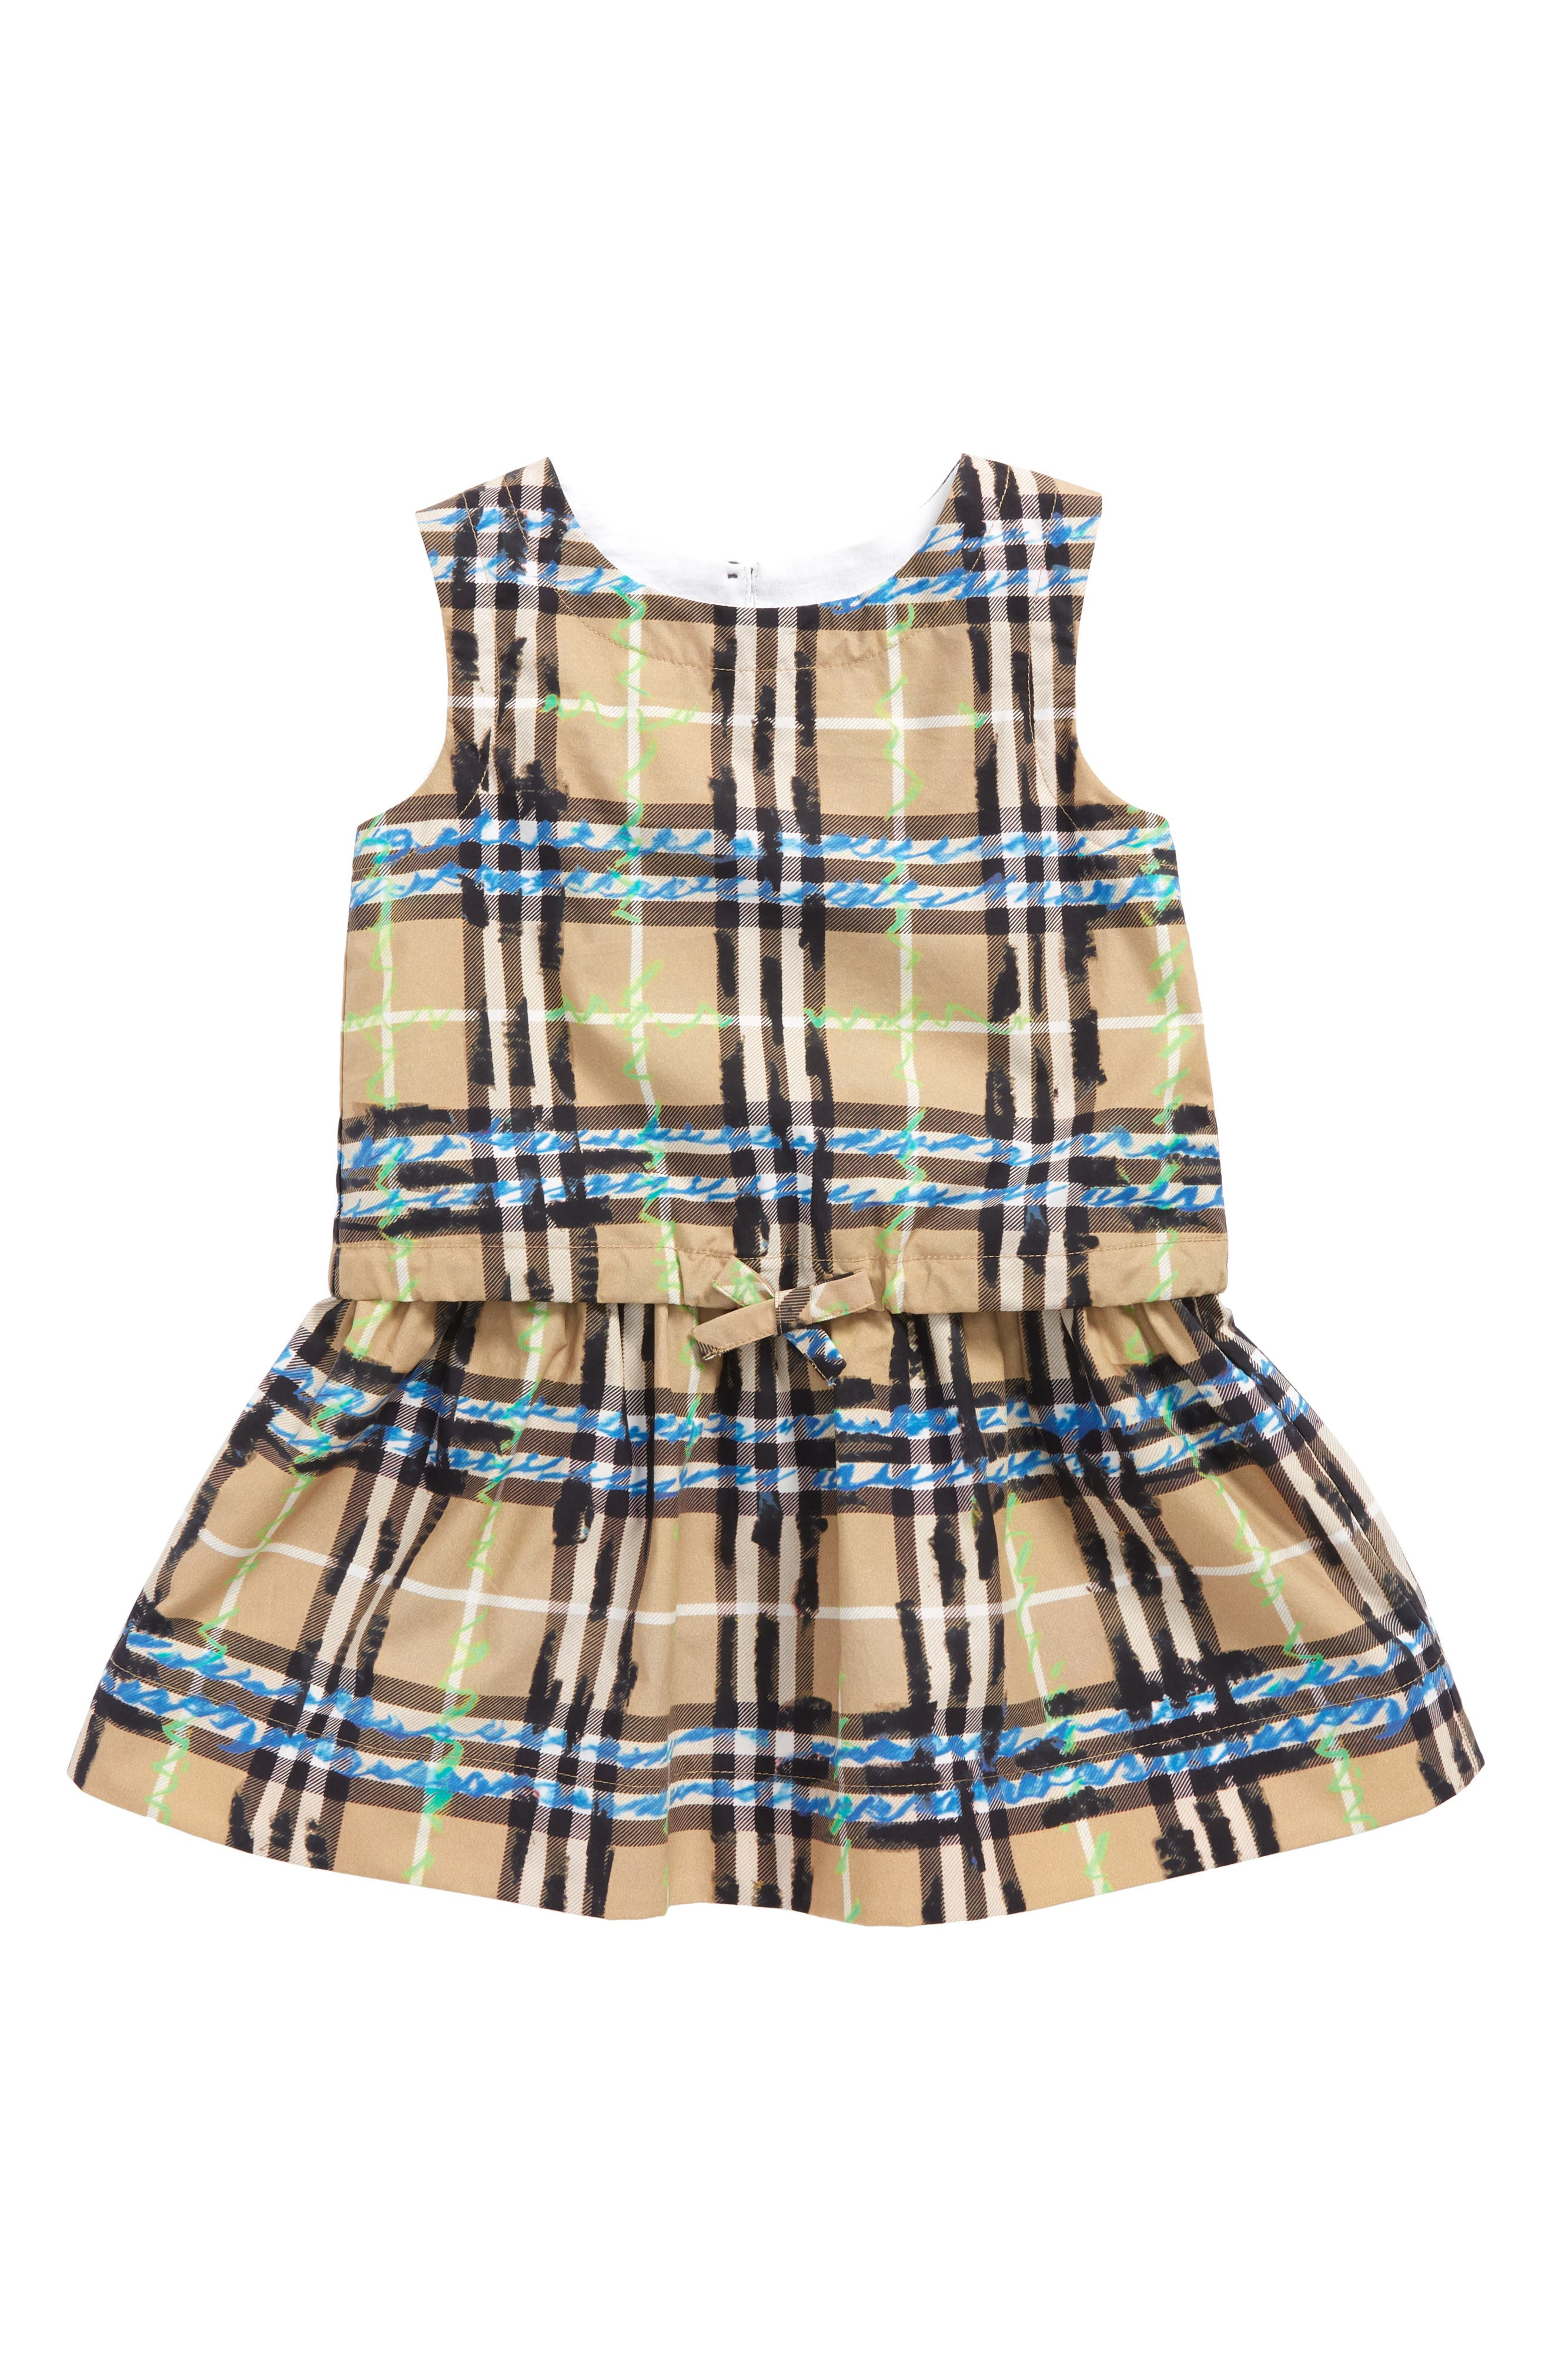 BURBERRY Mabel Check Dress, Main, color, 431